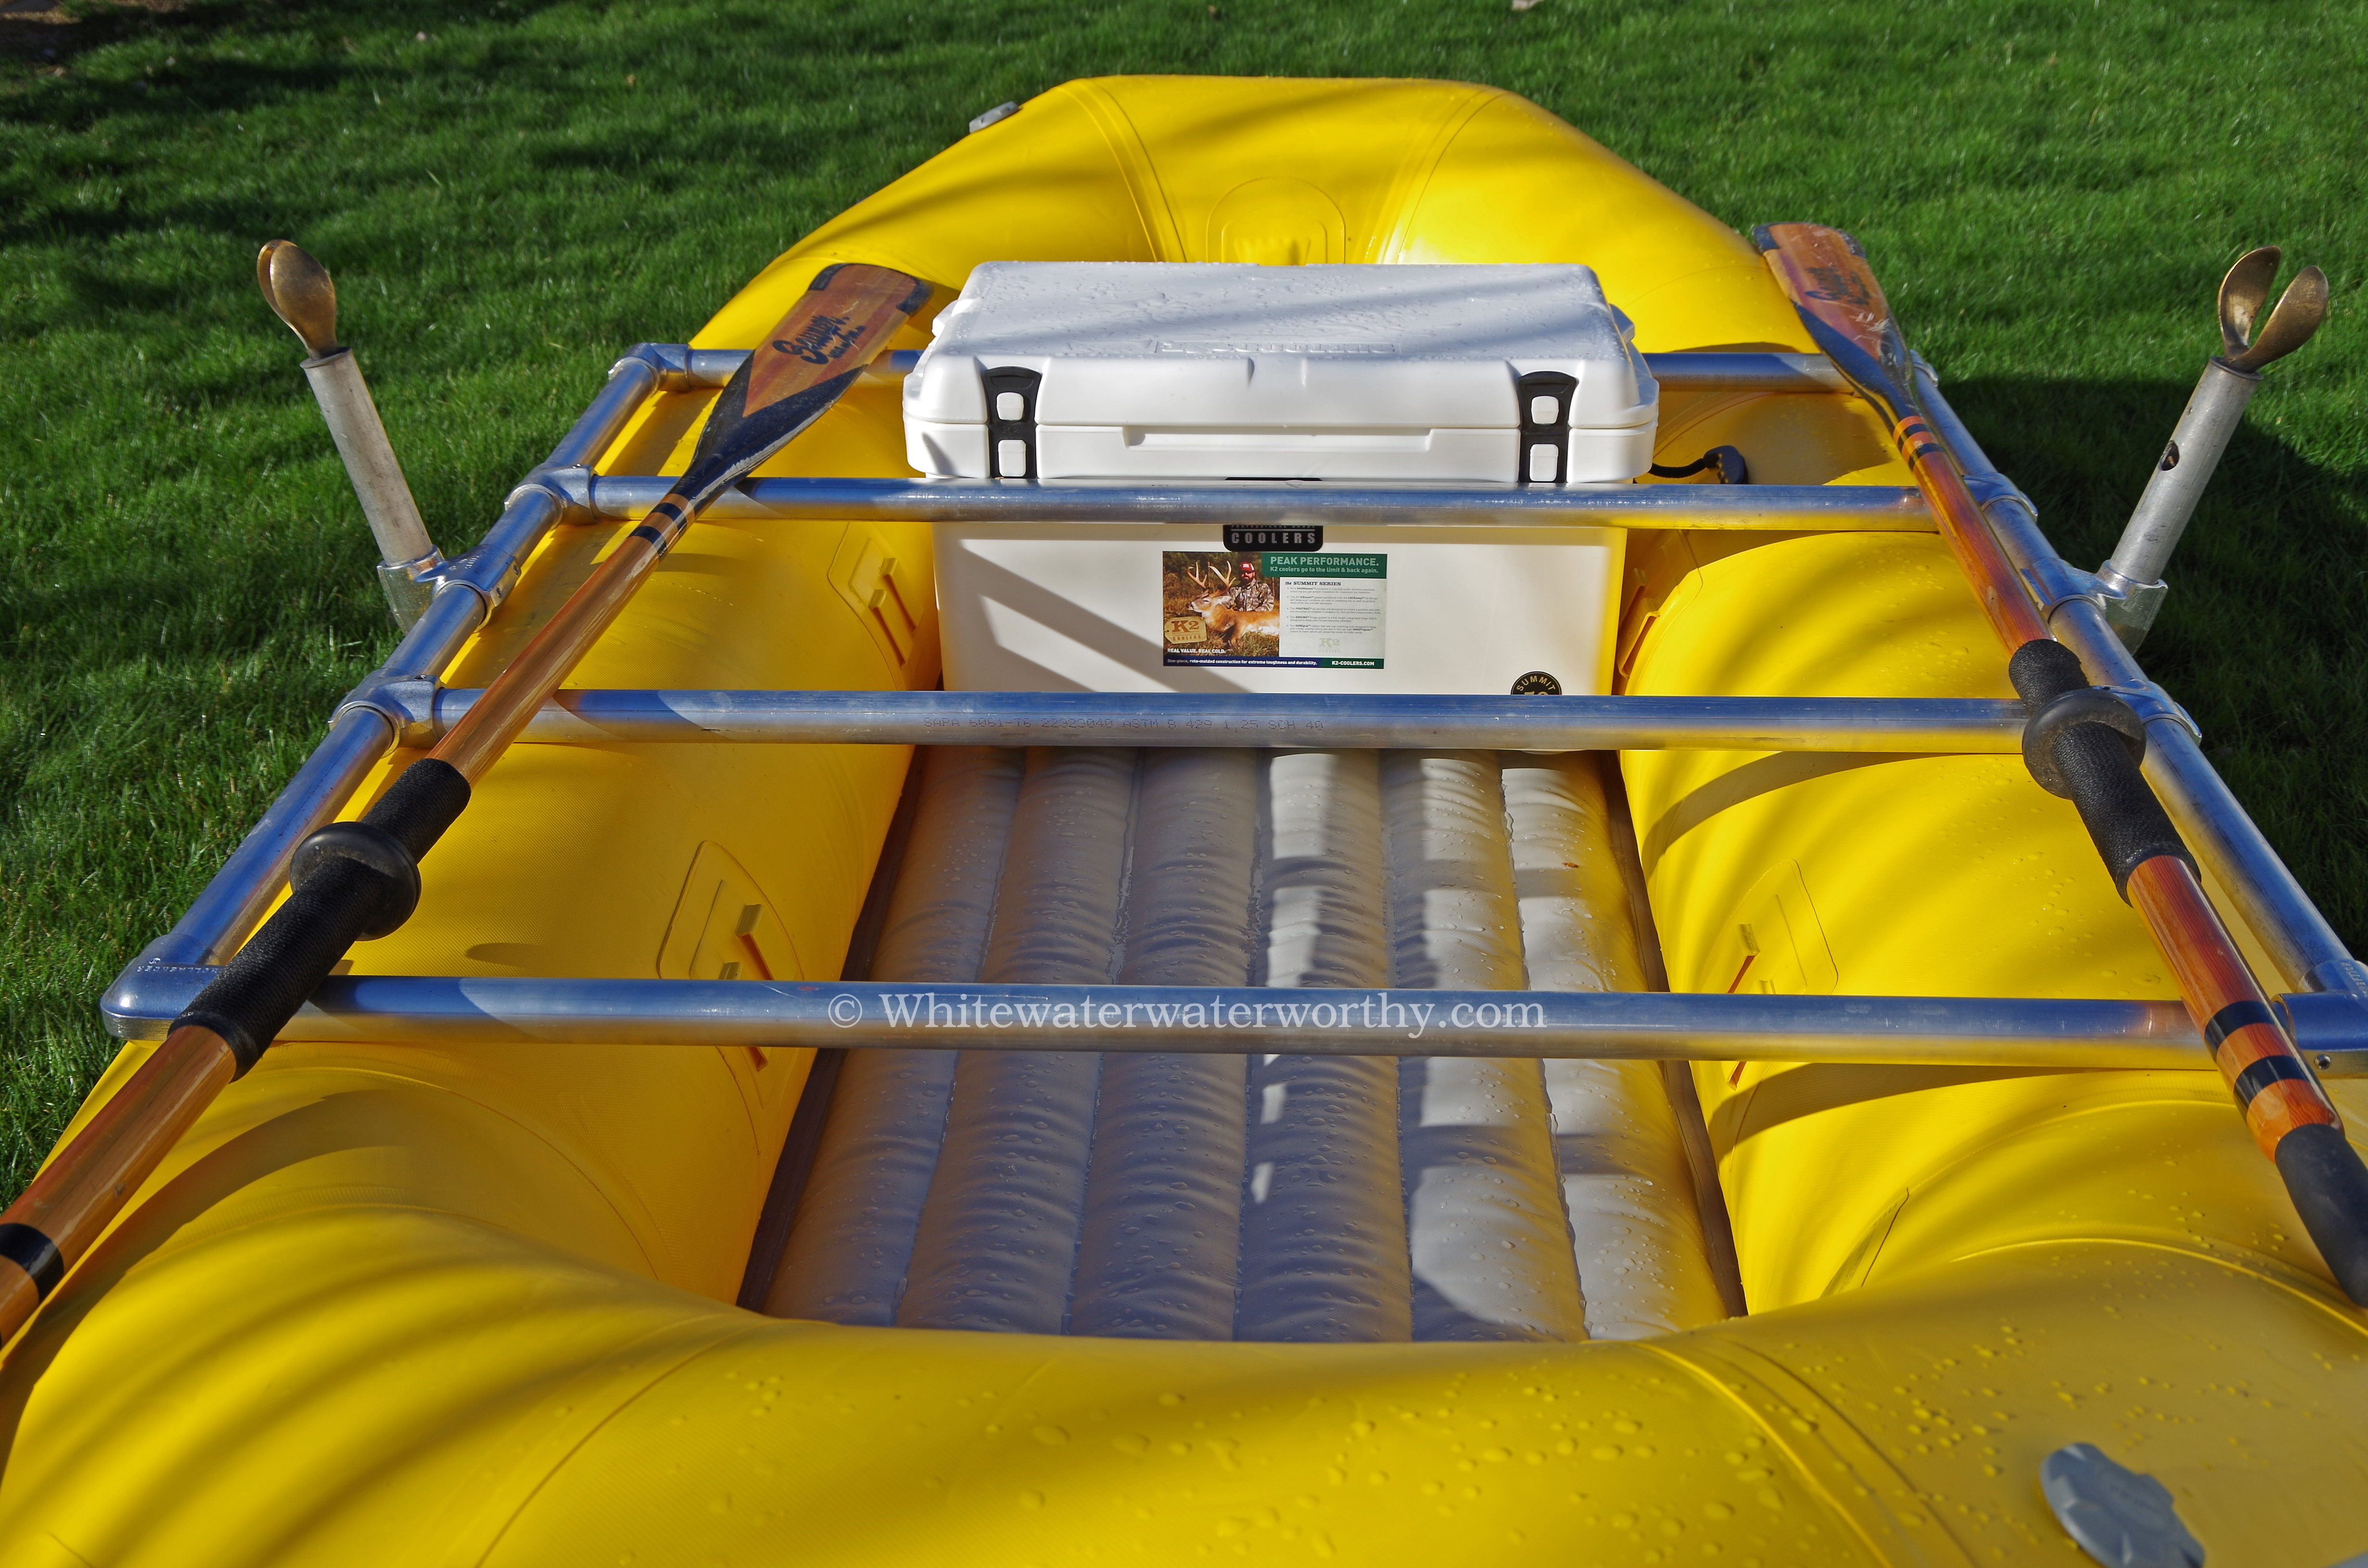 10 5' RMR Storm Package - Whitewater Worthy